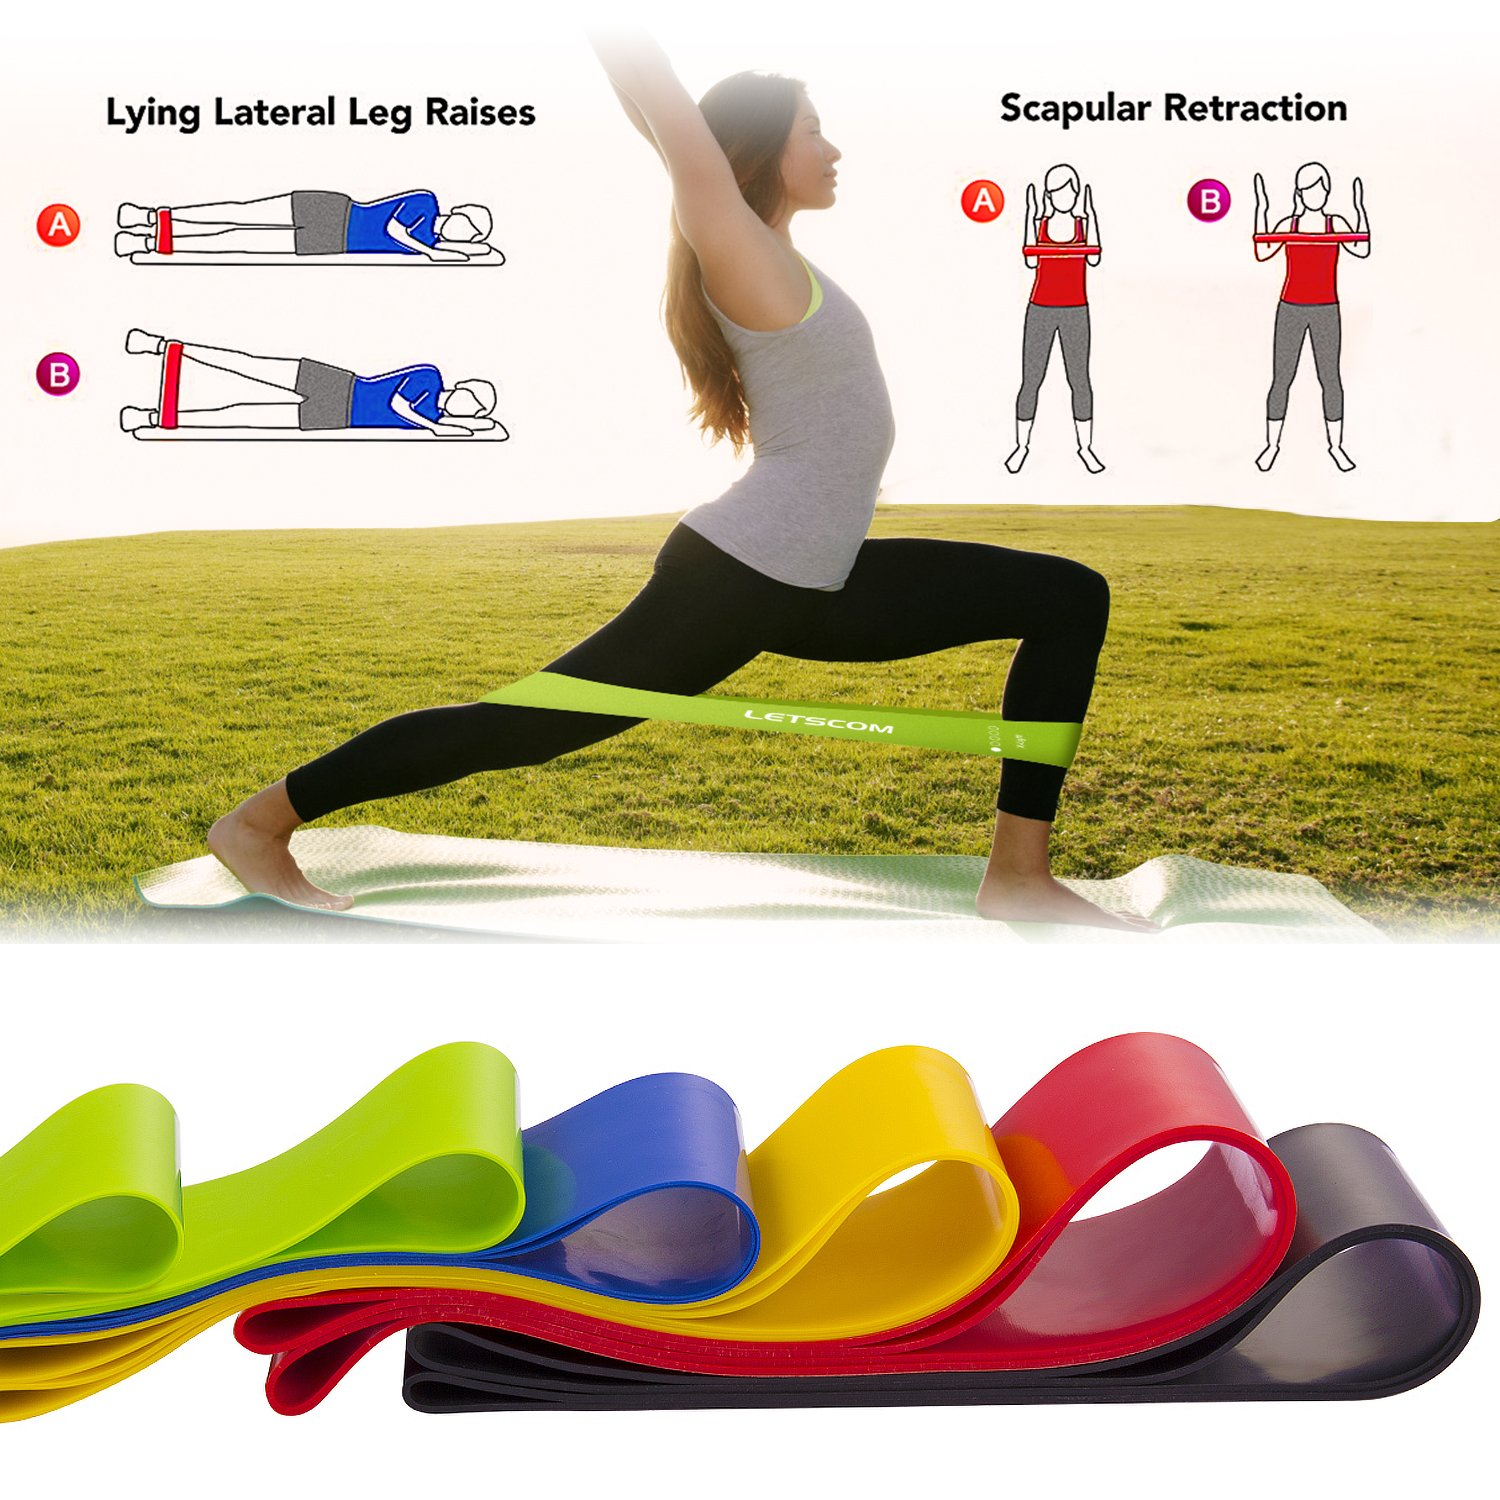 LETSCOM Resistance Bands, Exercise Loop Bands, 12'' Latex Elastic Bands for Stretching, Pilates and Home Fitness, 5 Stretch Levels Workout Bands with Carry Bag, EBook and Online Videos, Set of 6 by LETSCOM (Image #5)